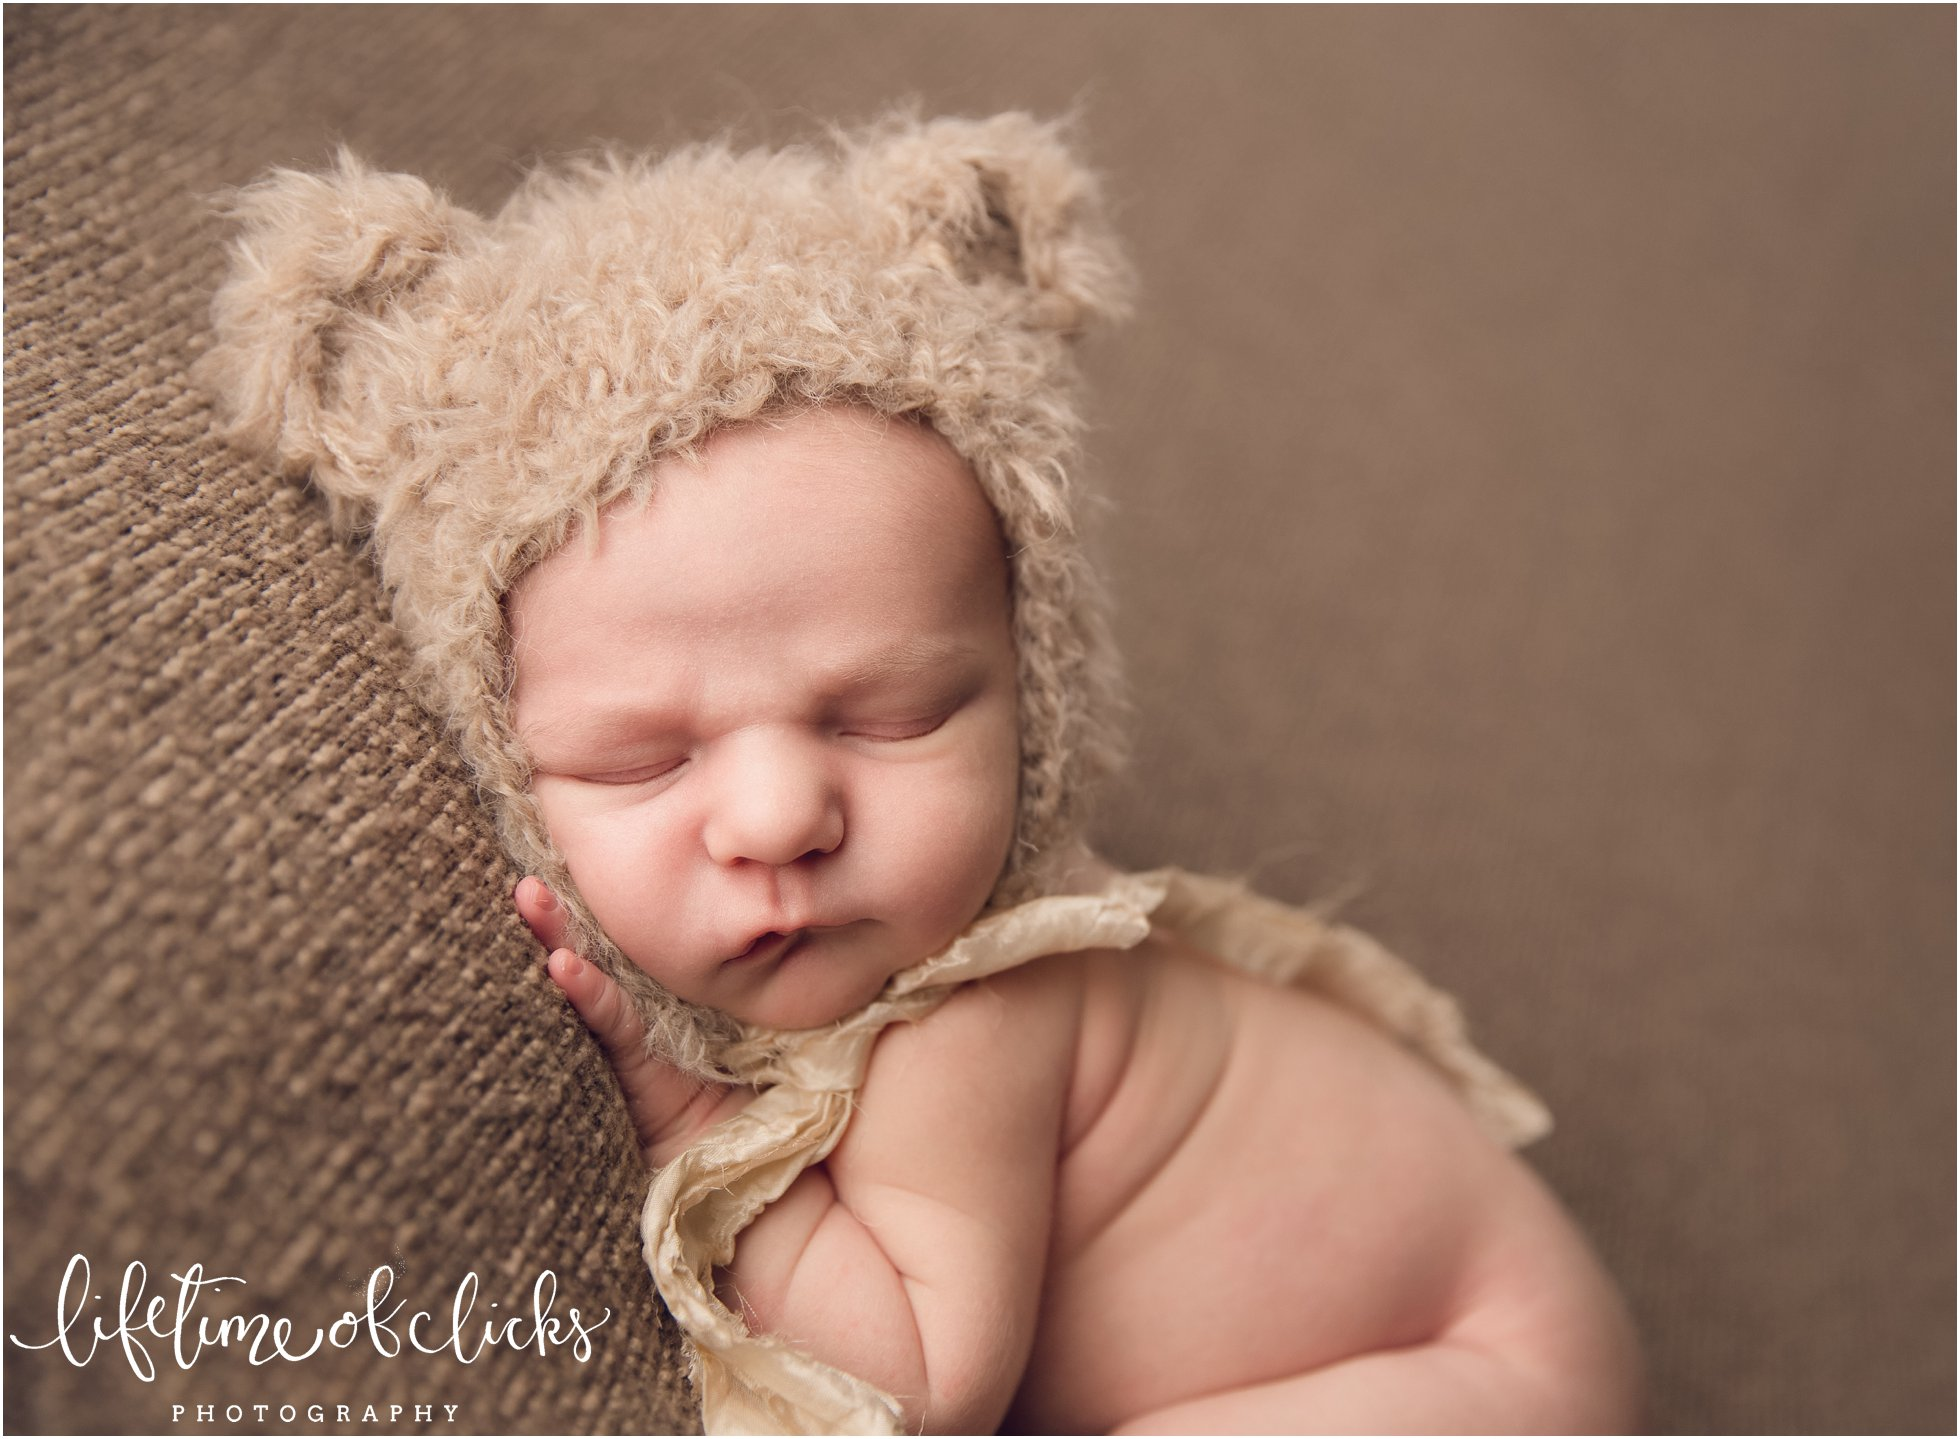 Newborn boy sleeping in Katy Texas Studio | Photo by Lifetime of Clicks Photography